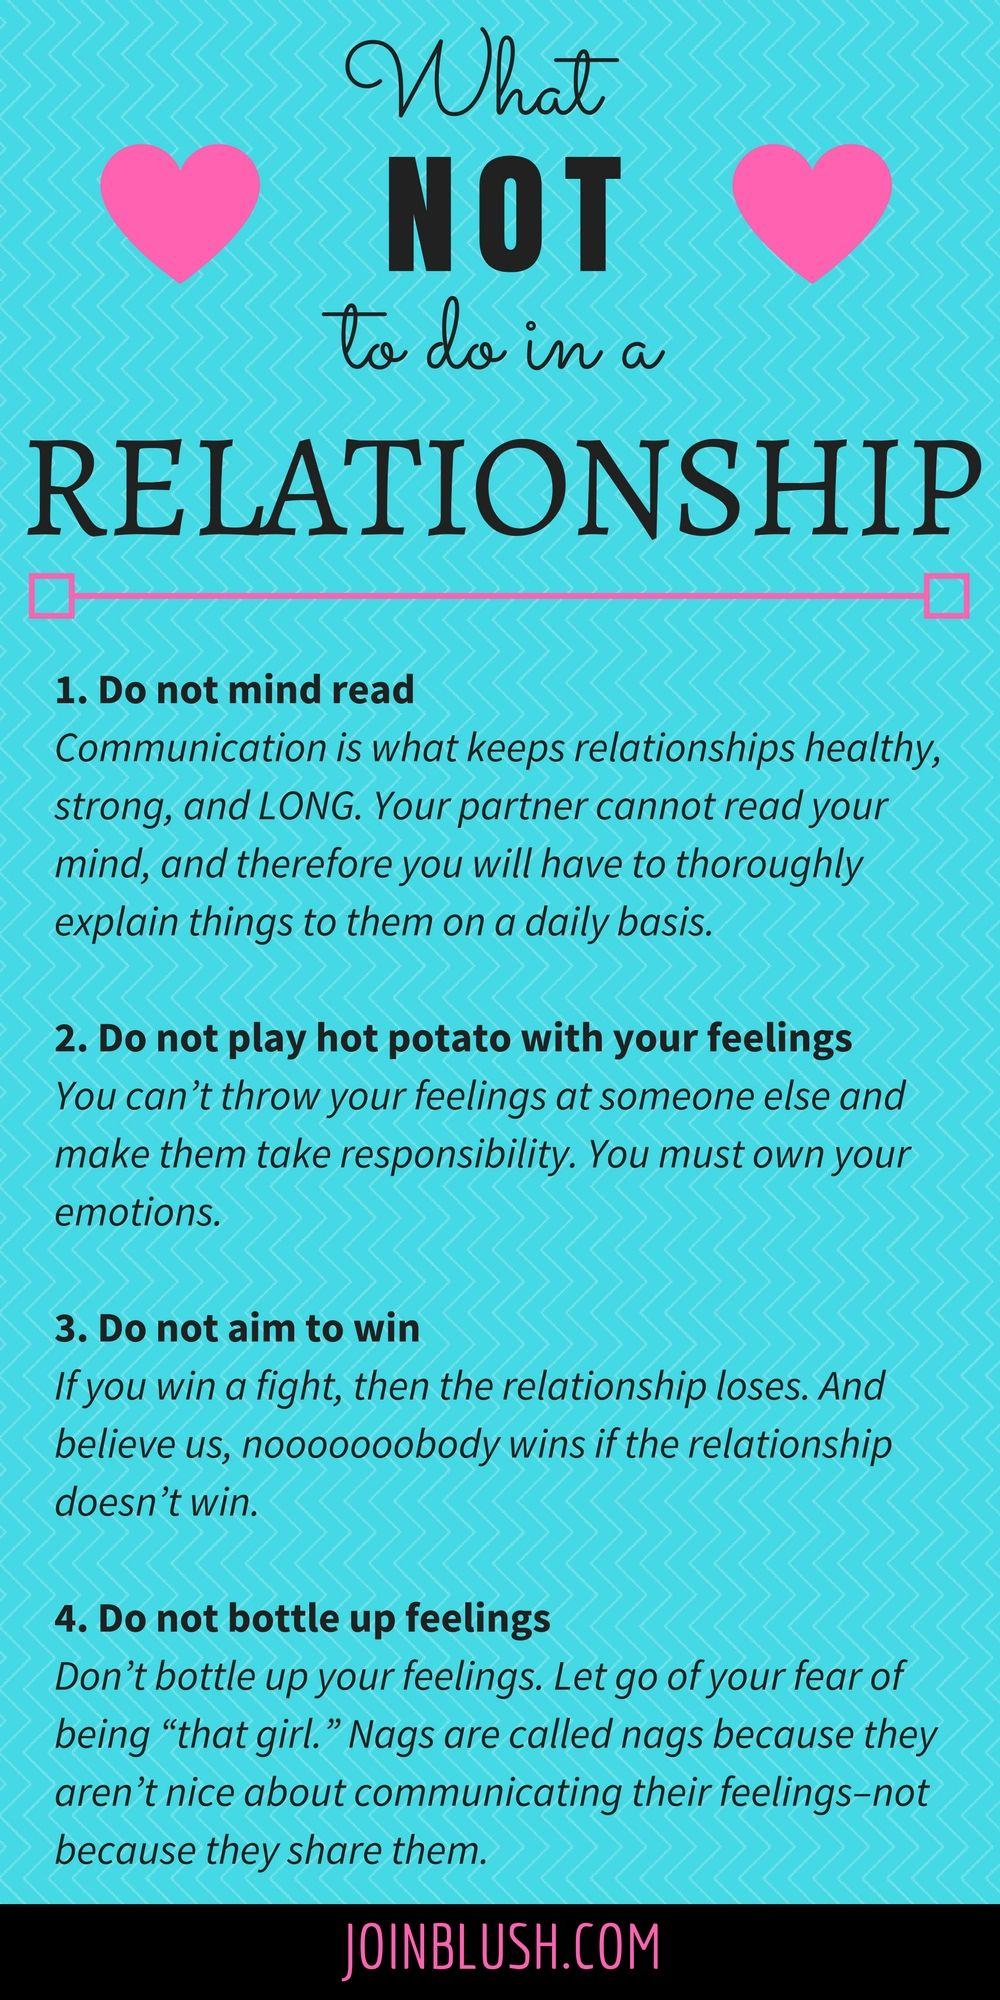 Best Love Tips & Relationship Advice for Girls - Seventeen